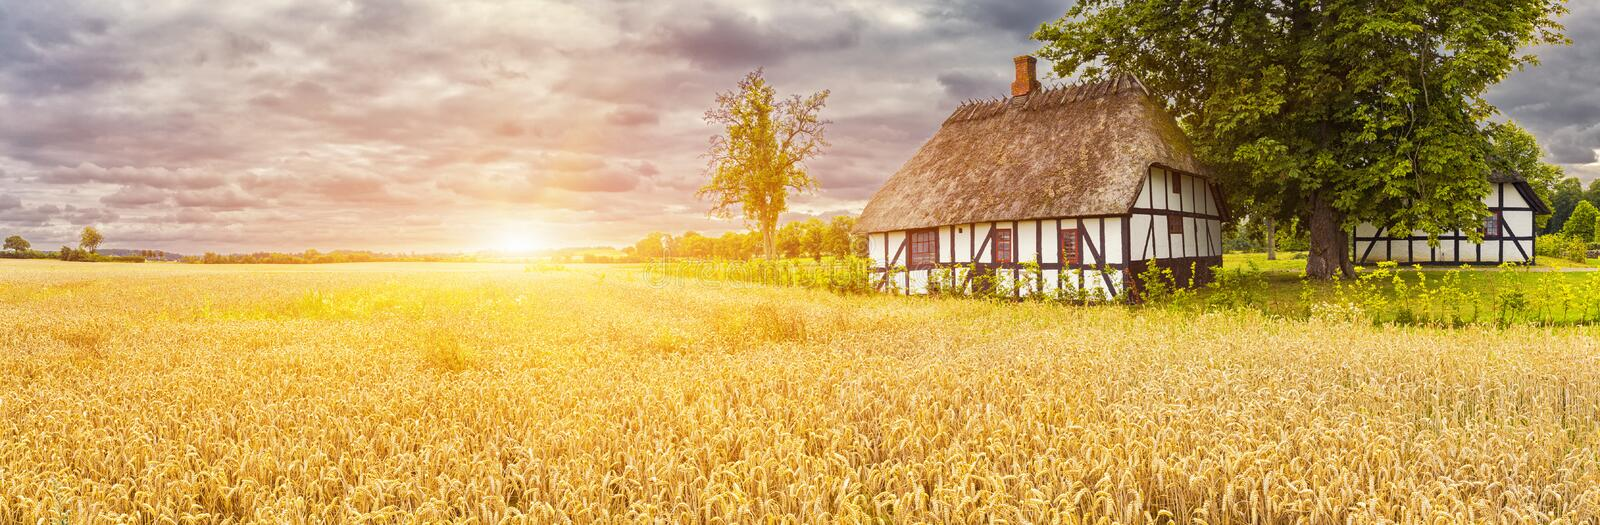 Typical Danish Picturesque old houses and wheatfield at Sunrise royalty free stock photo